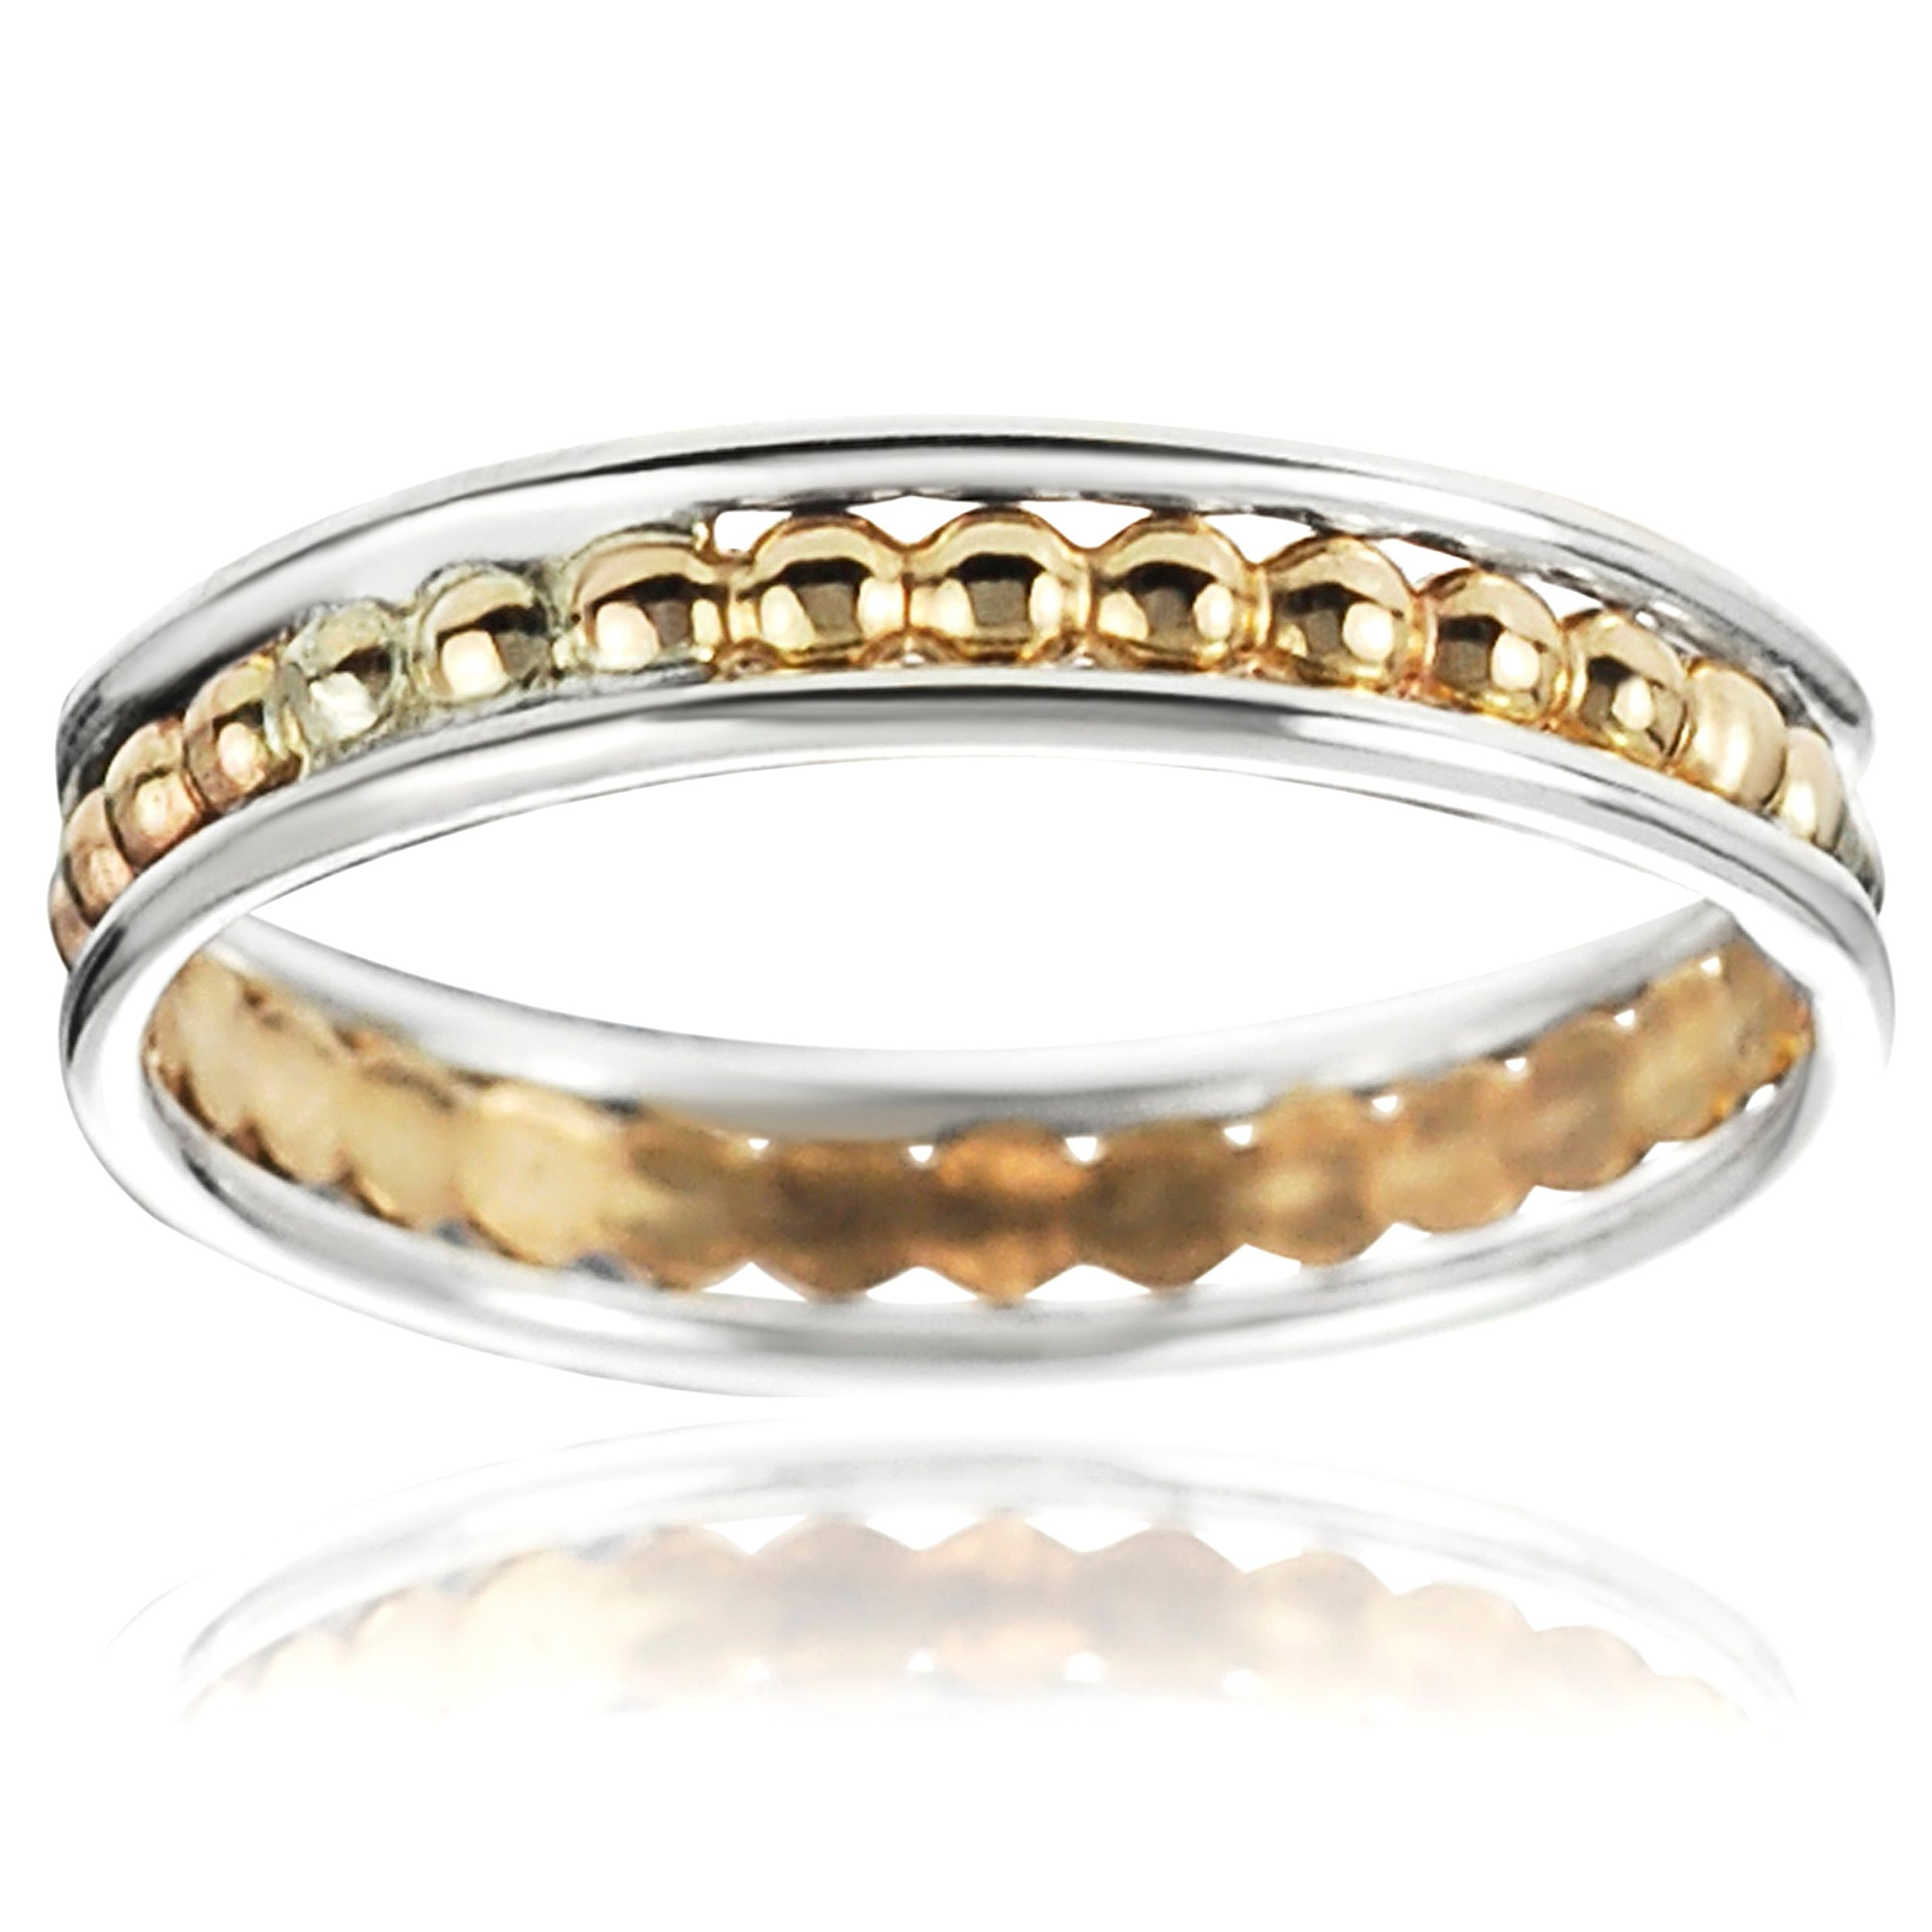 Journee Collection Sterling Silver Handcrafted Textured Band